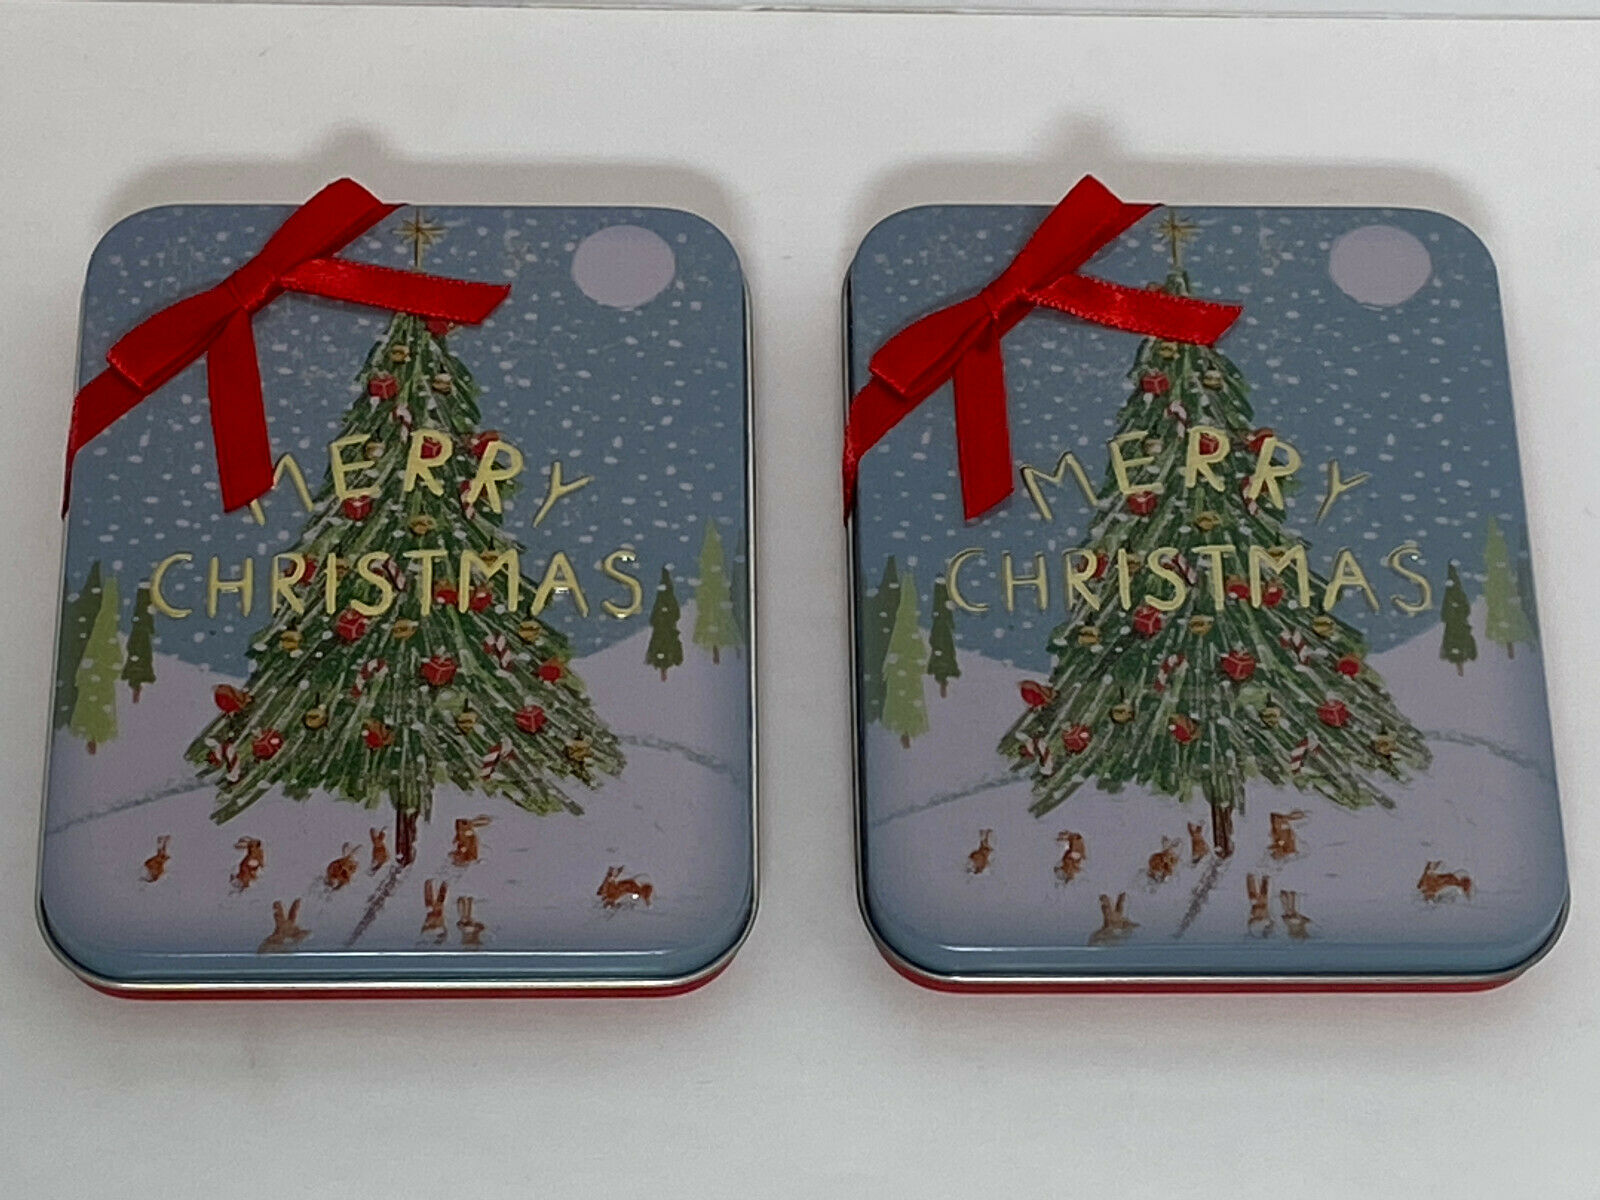 Give A Gift Merry Christmas Tin Gift Card Holder For Sale Online